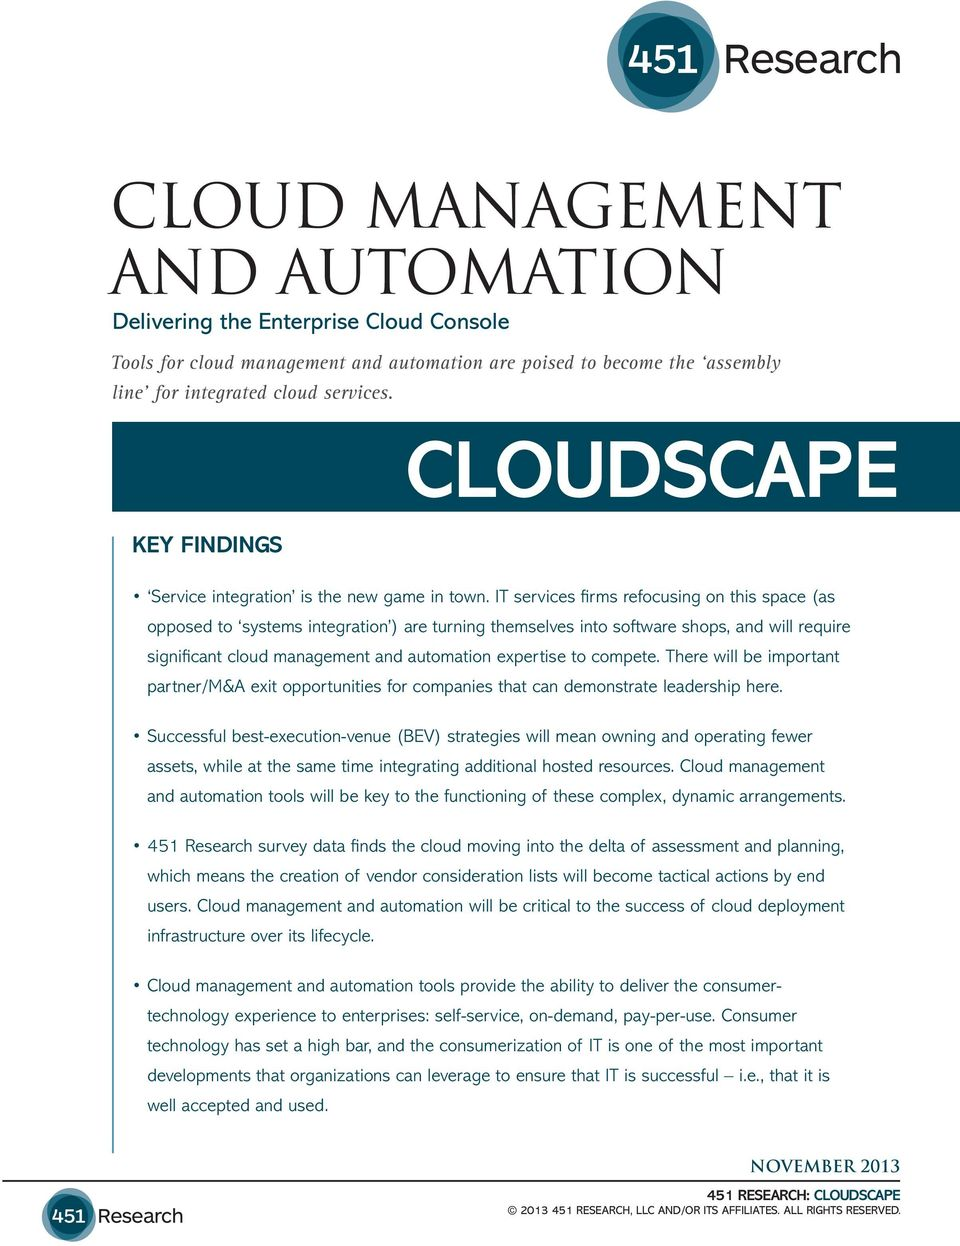 IT services firms refocusing on this space (as opposed to systems integration ) are turning themselves into software shops, and will require significant cloud management and automation expertise to